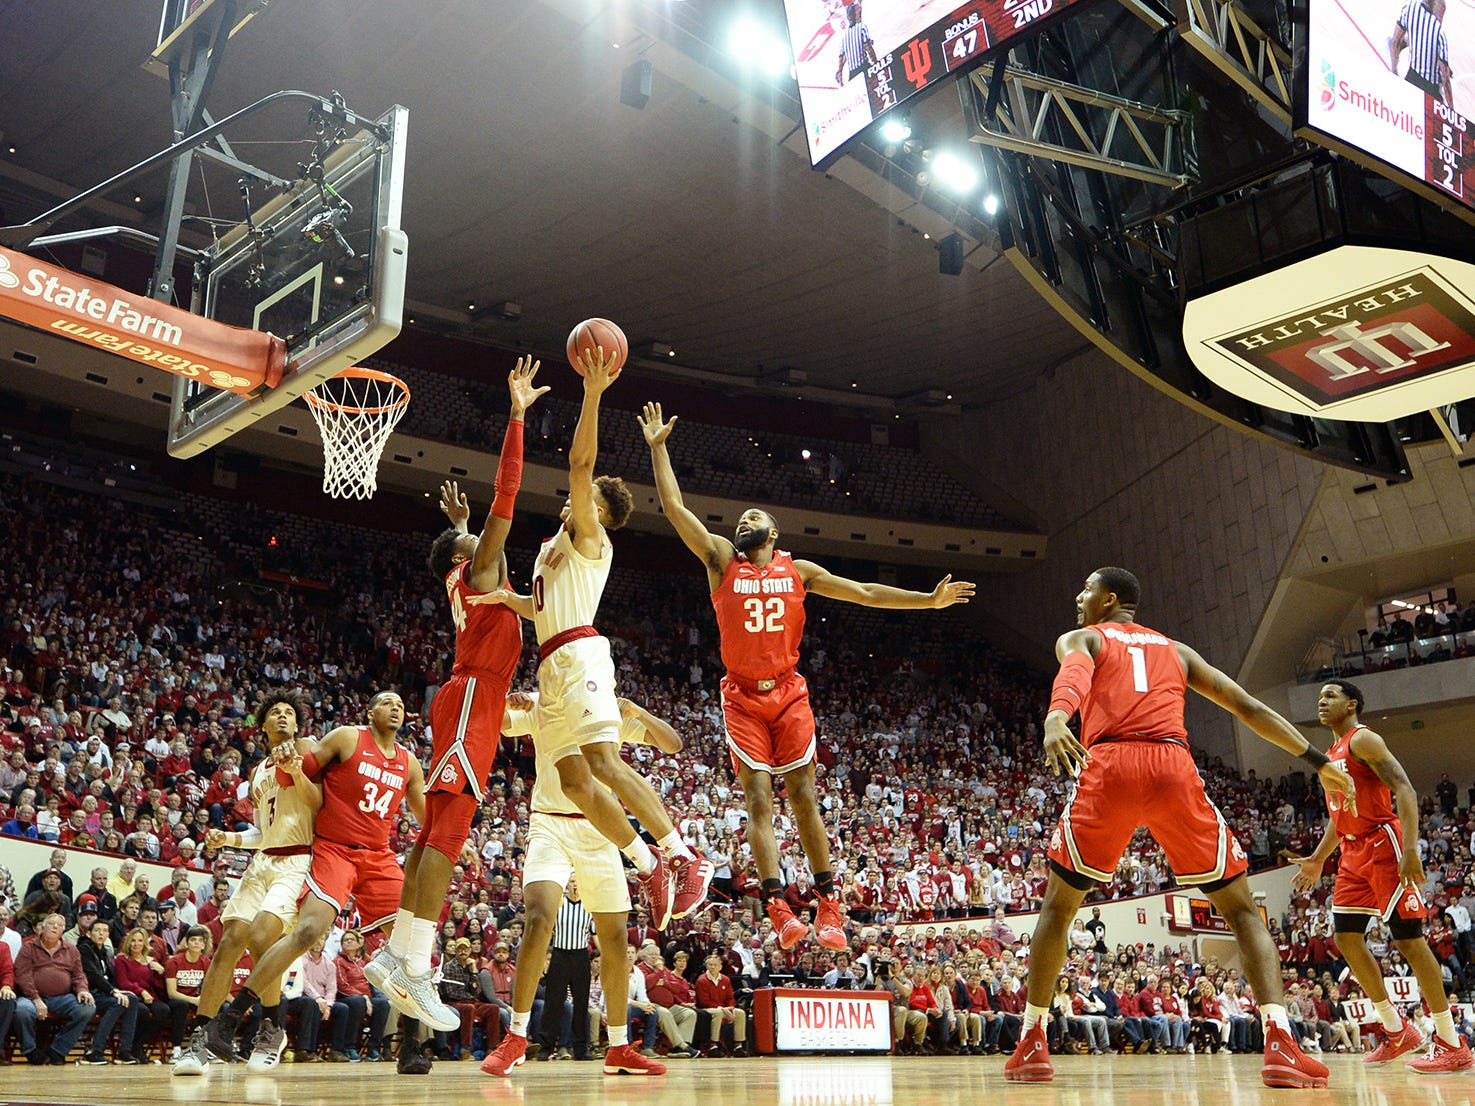 Indiana Hoosiers guard Rob Phinisee (10) attempts a shot during the game against Ohio State at Simon Skjodt Assembly Hall in Bloomington Ind., on Sunday, Feb. 10, 2019.